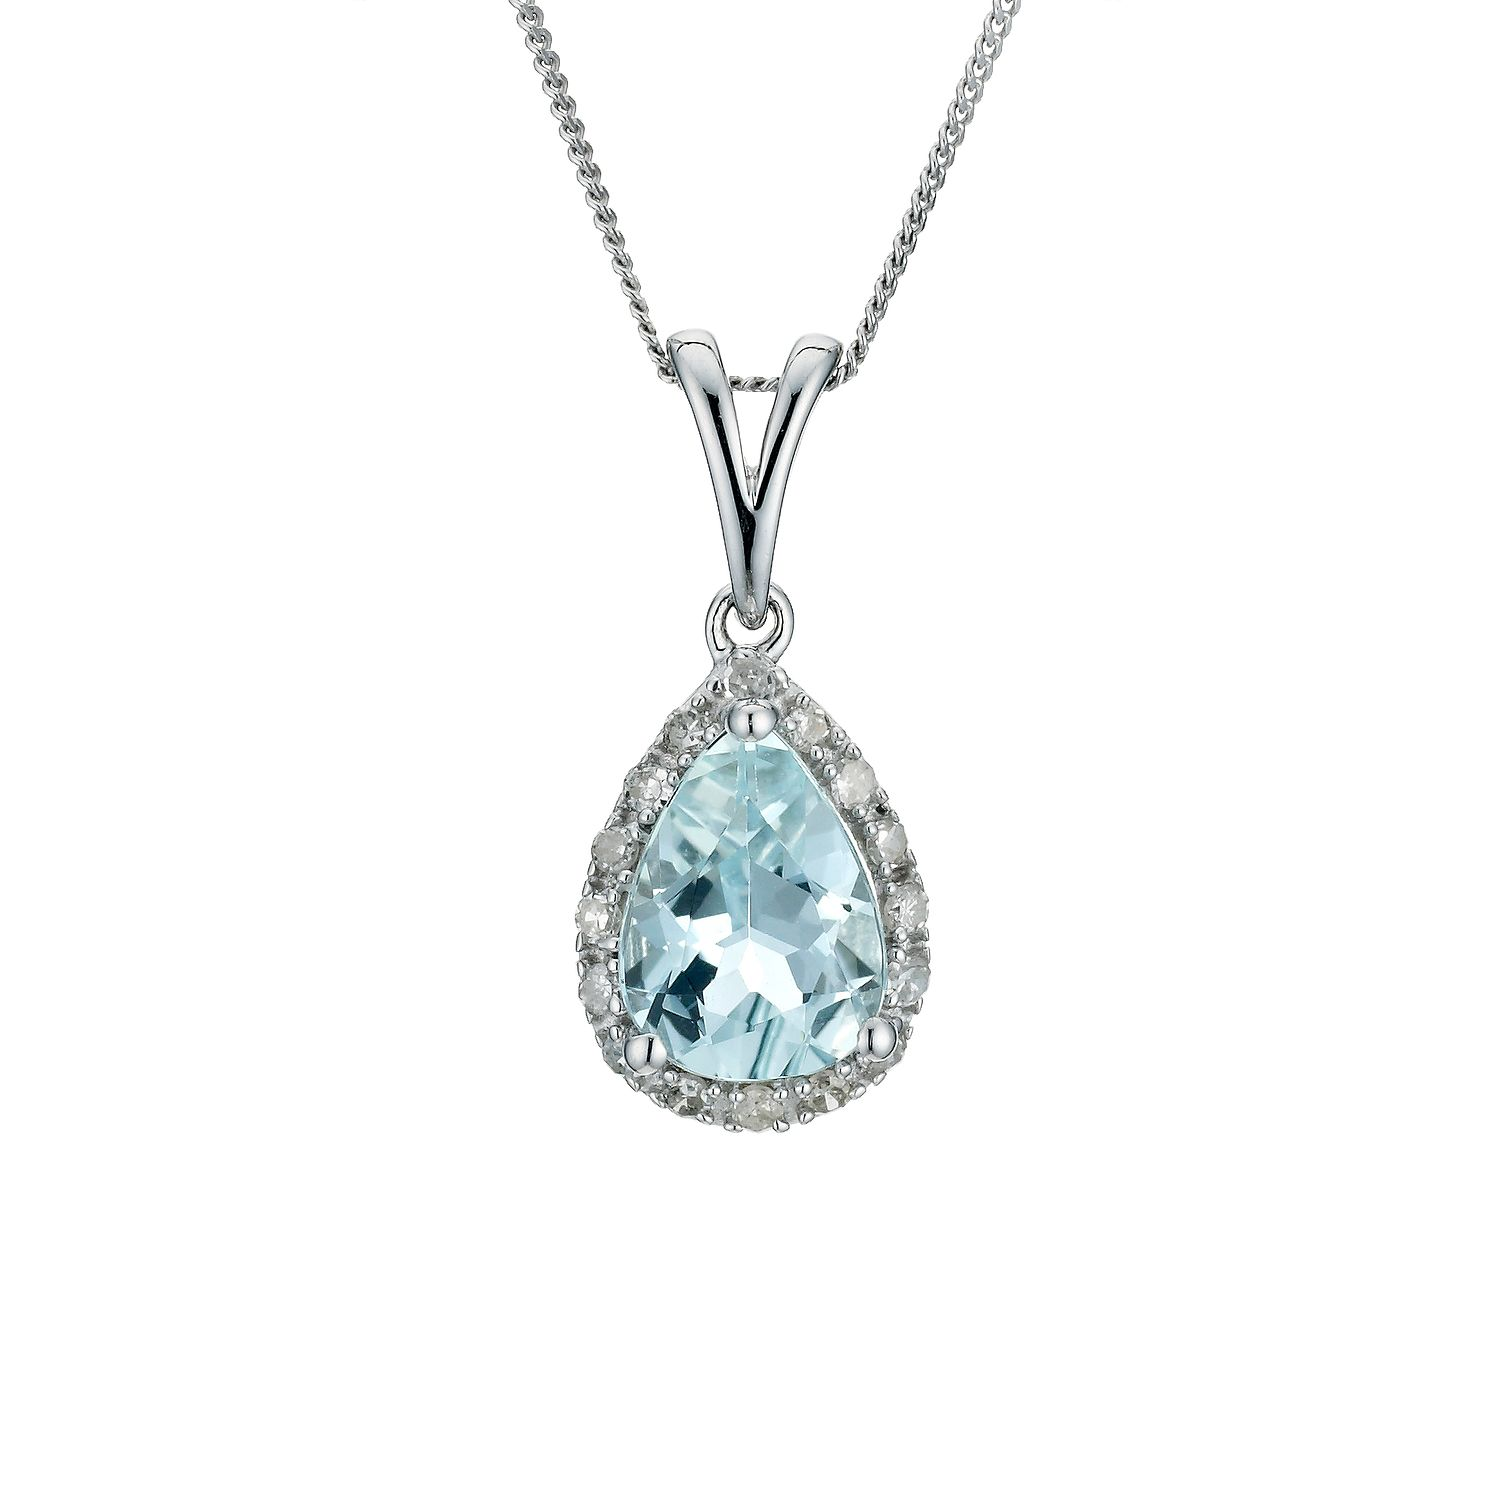 dinamackney marine edge com artisanal aquamarine oval pendant aqua dina web with mackney